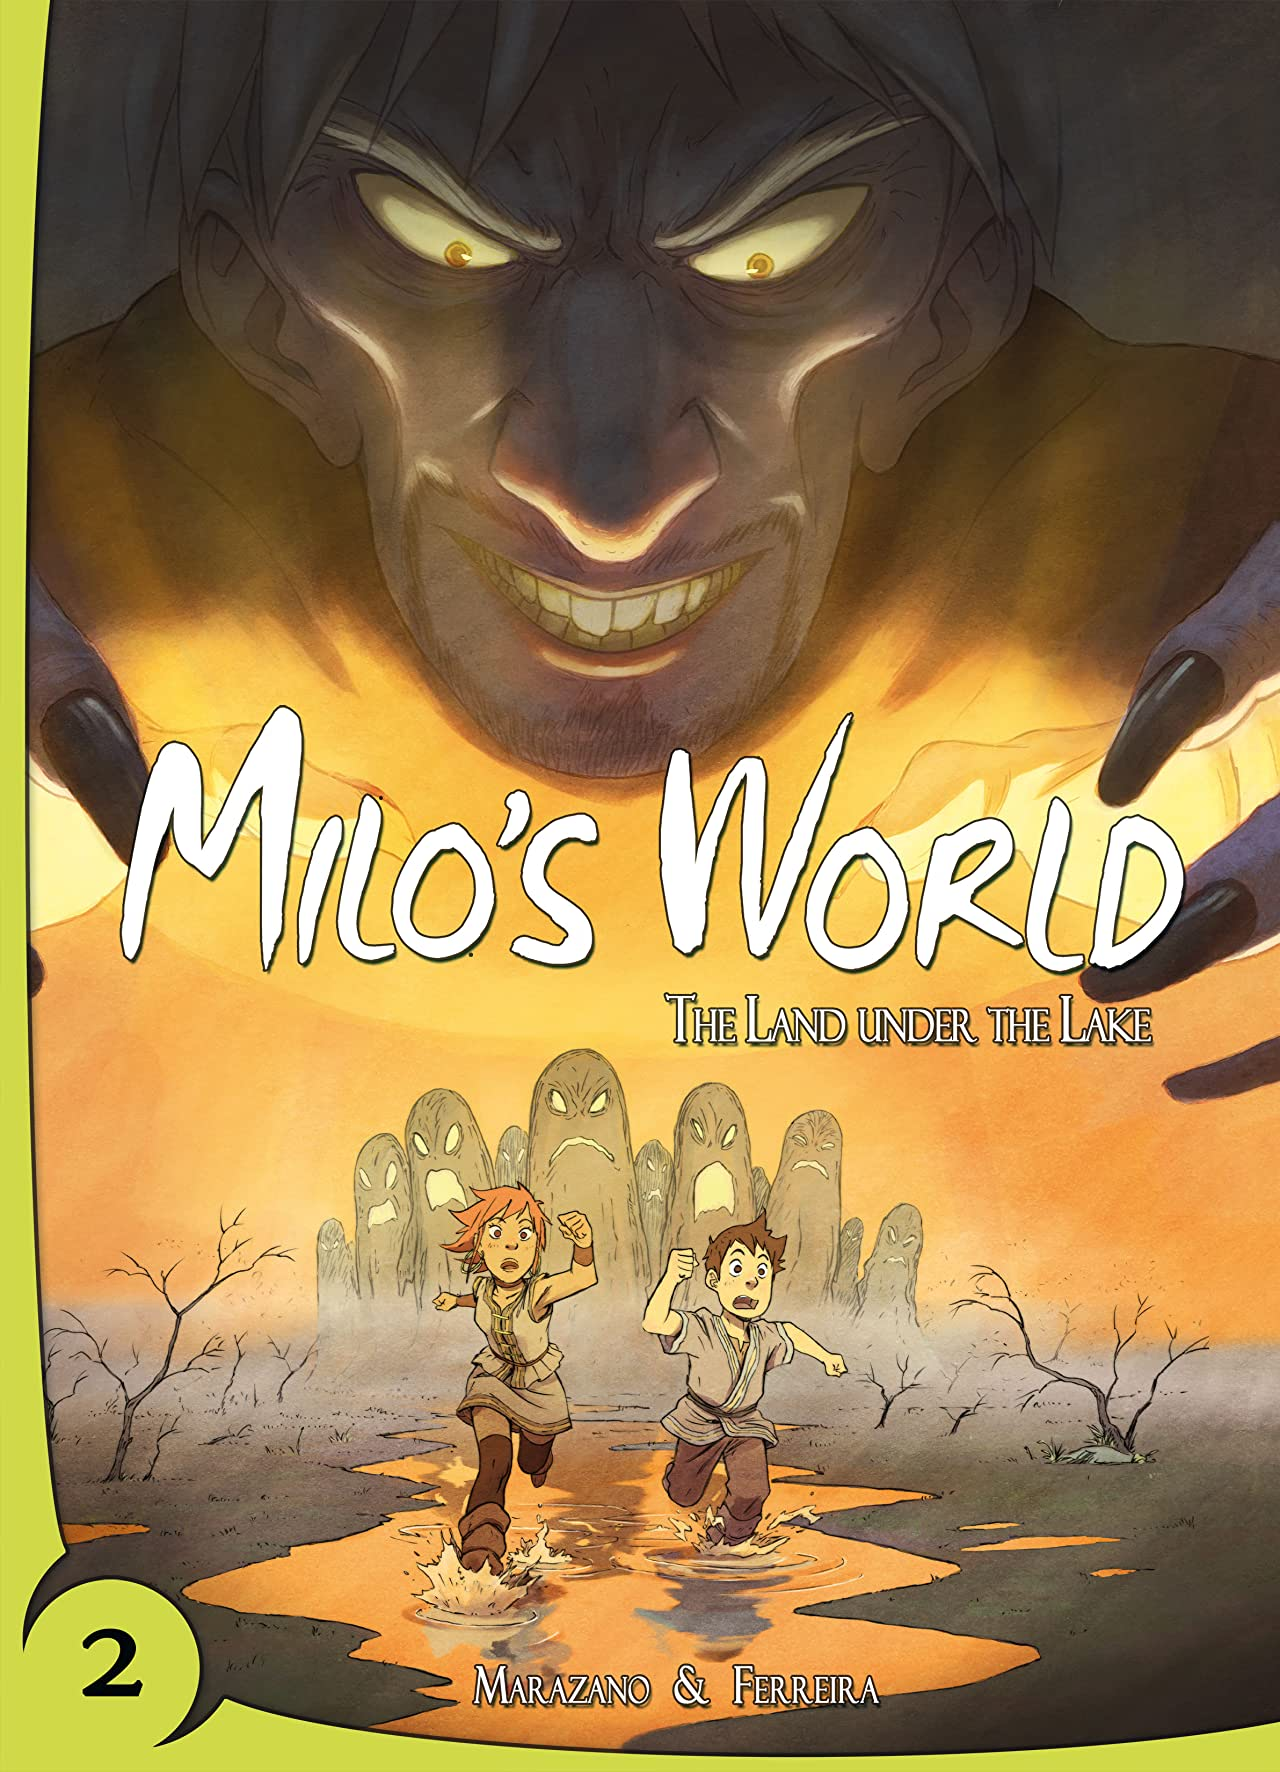 Milo's World Vol. 1 #2: The Land under the Lake